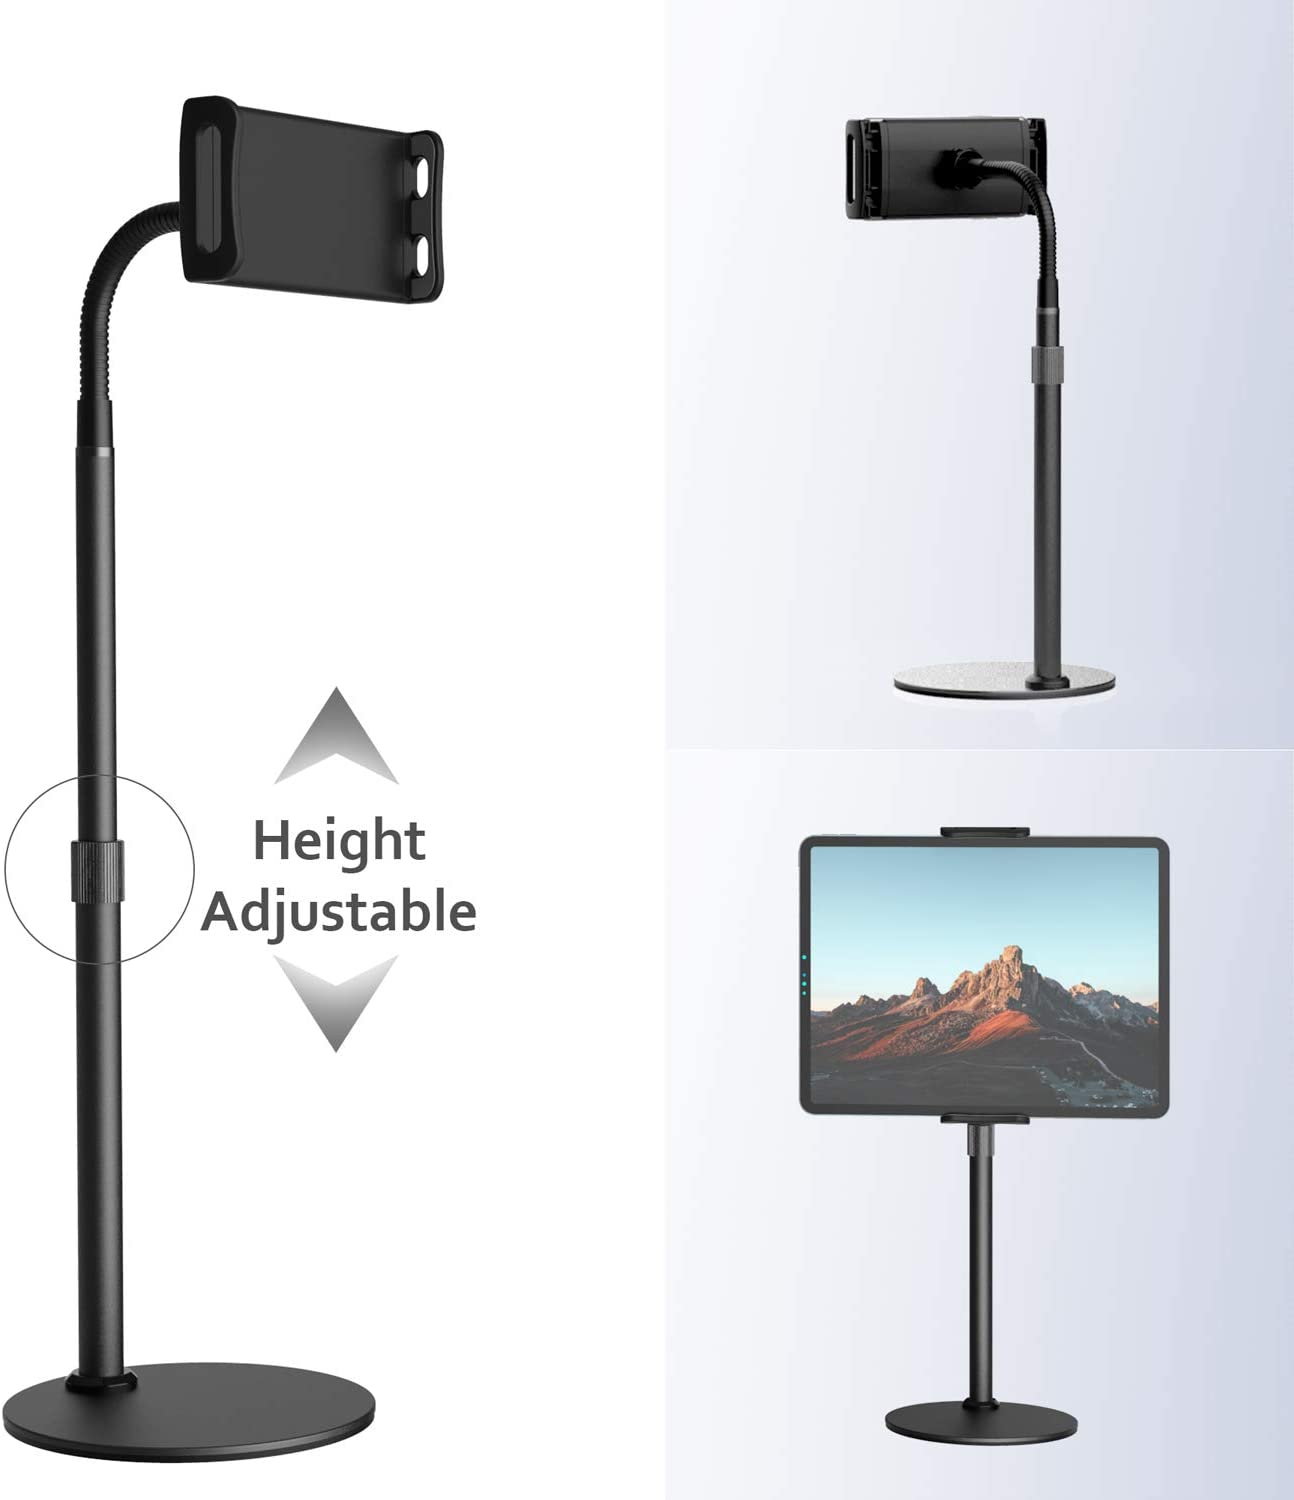 Phone/Tablet Stand Holder,Yikola Height&Angles Adjustable 360°Rotation Tablet Stand Riser with Gooseneck Flexible Arm&Adjustable Clamp Clip,Metal Elevator Cradle Mount forCellphone&Tablet Up to 12.9""